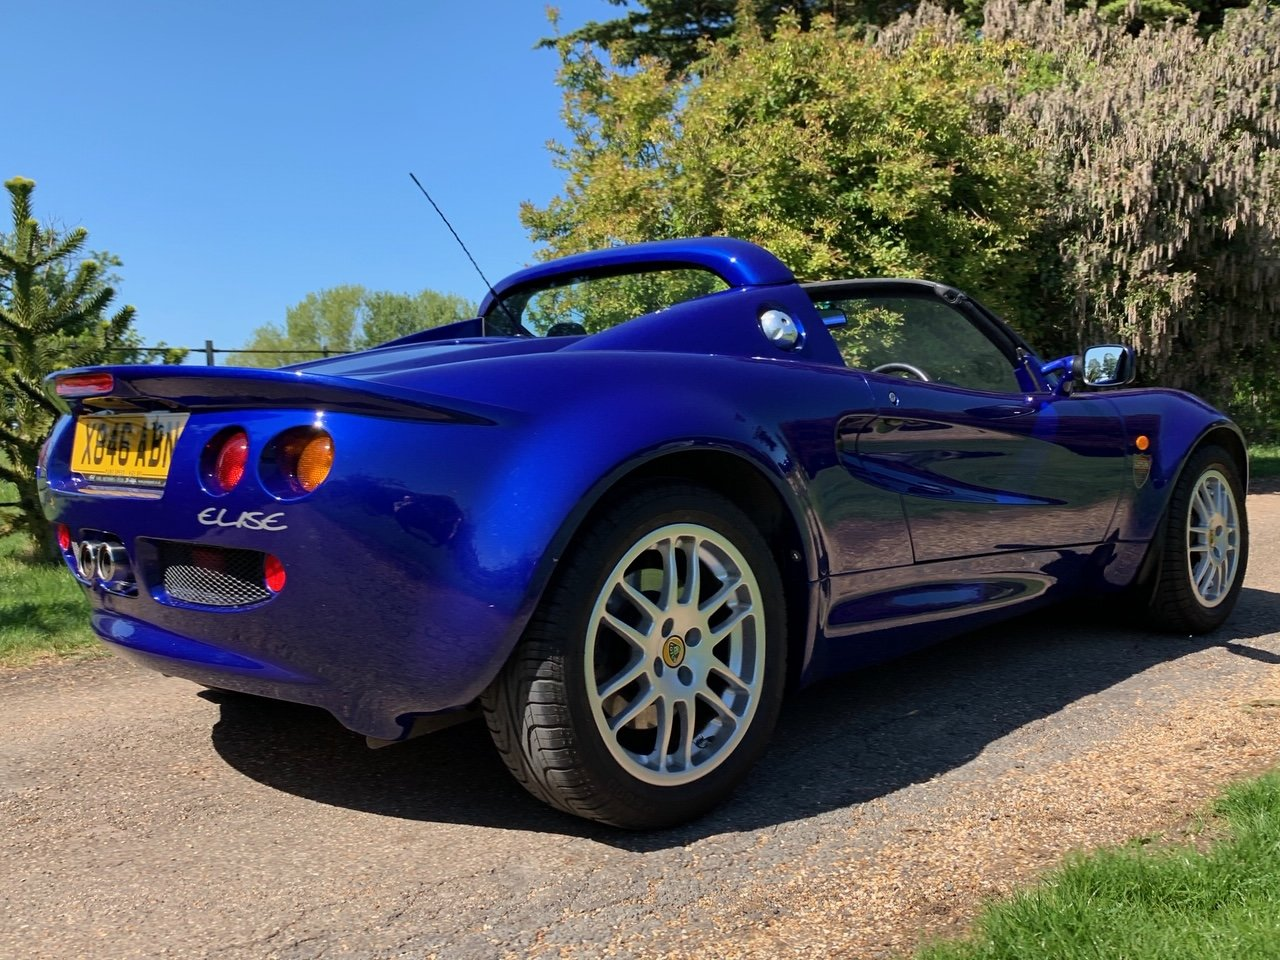 2000 Lotus Elise S1 - ONLY 17,900 Miles *** NOW SOLD *** For Sale (picture 3 of 6)